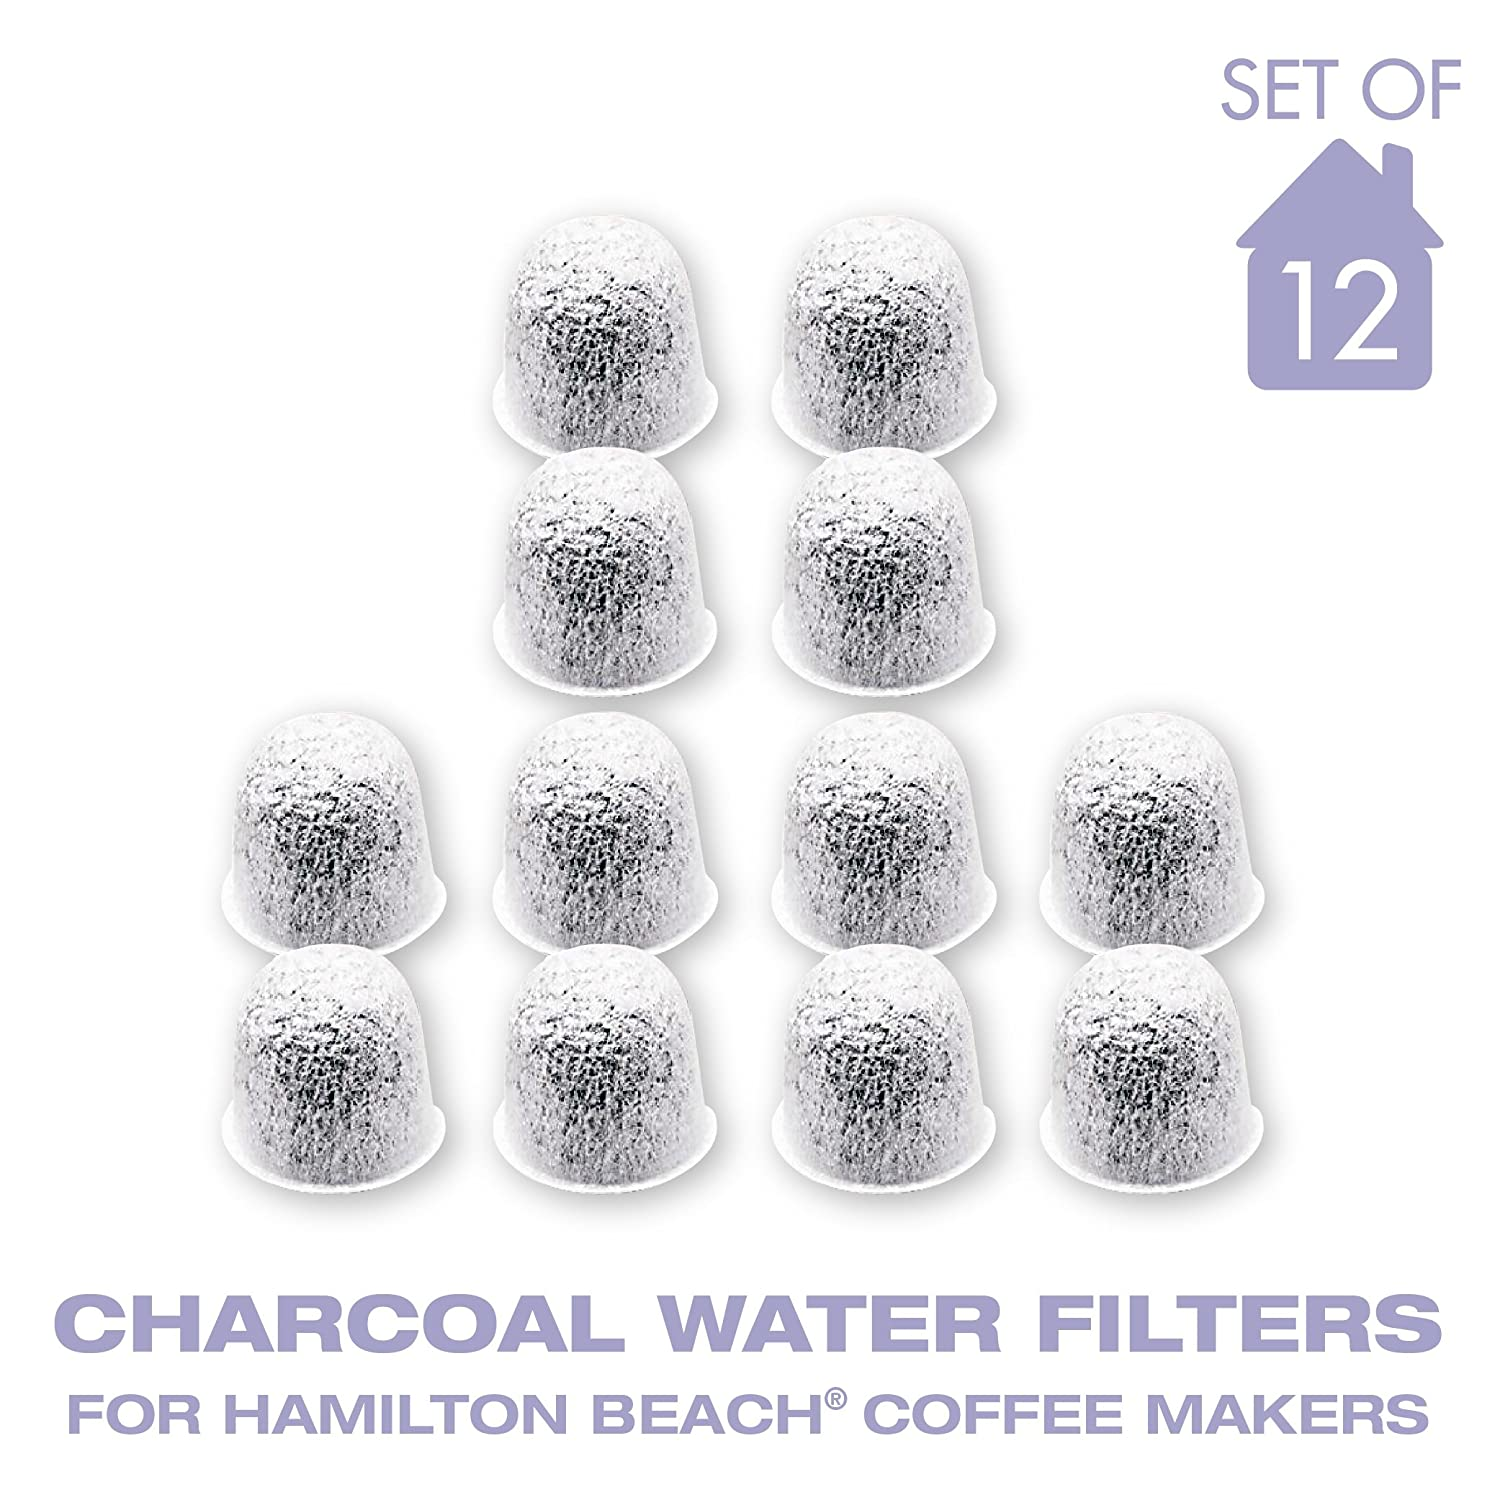 Charcoal Water Coffee Filter Cartridges, Replaces Hamilton Beach Water Coffee Filters- Set of 12